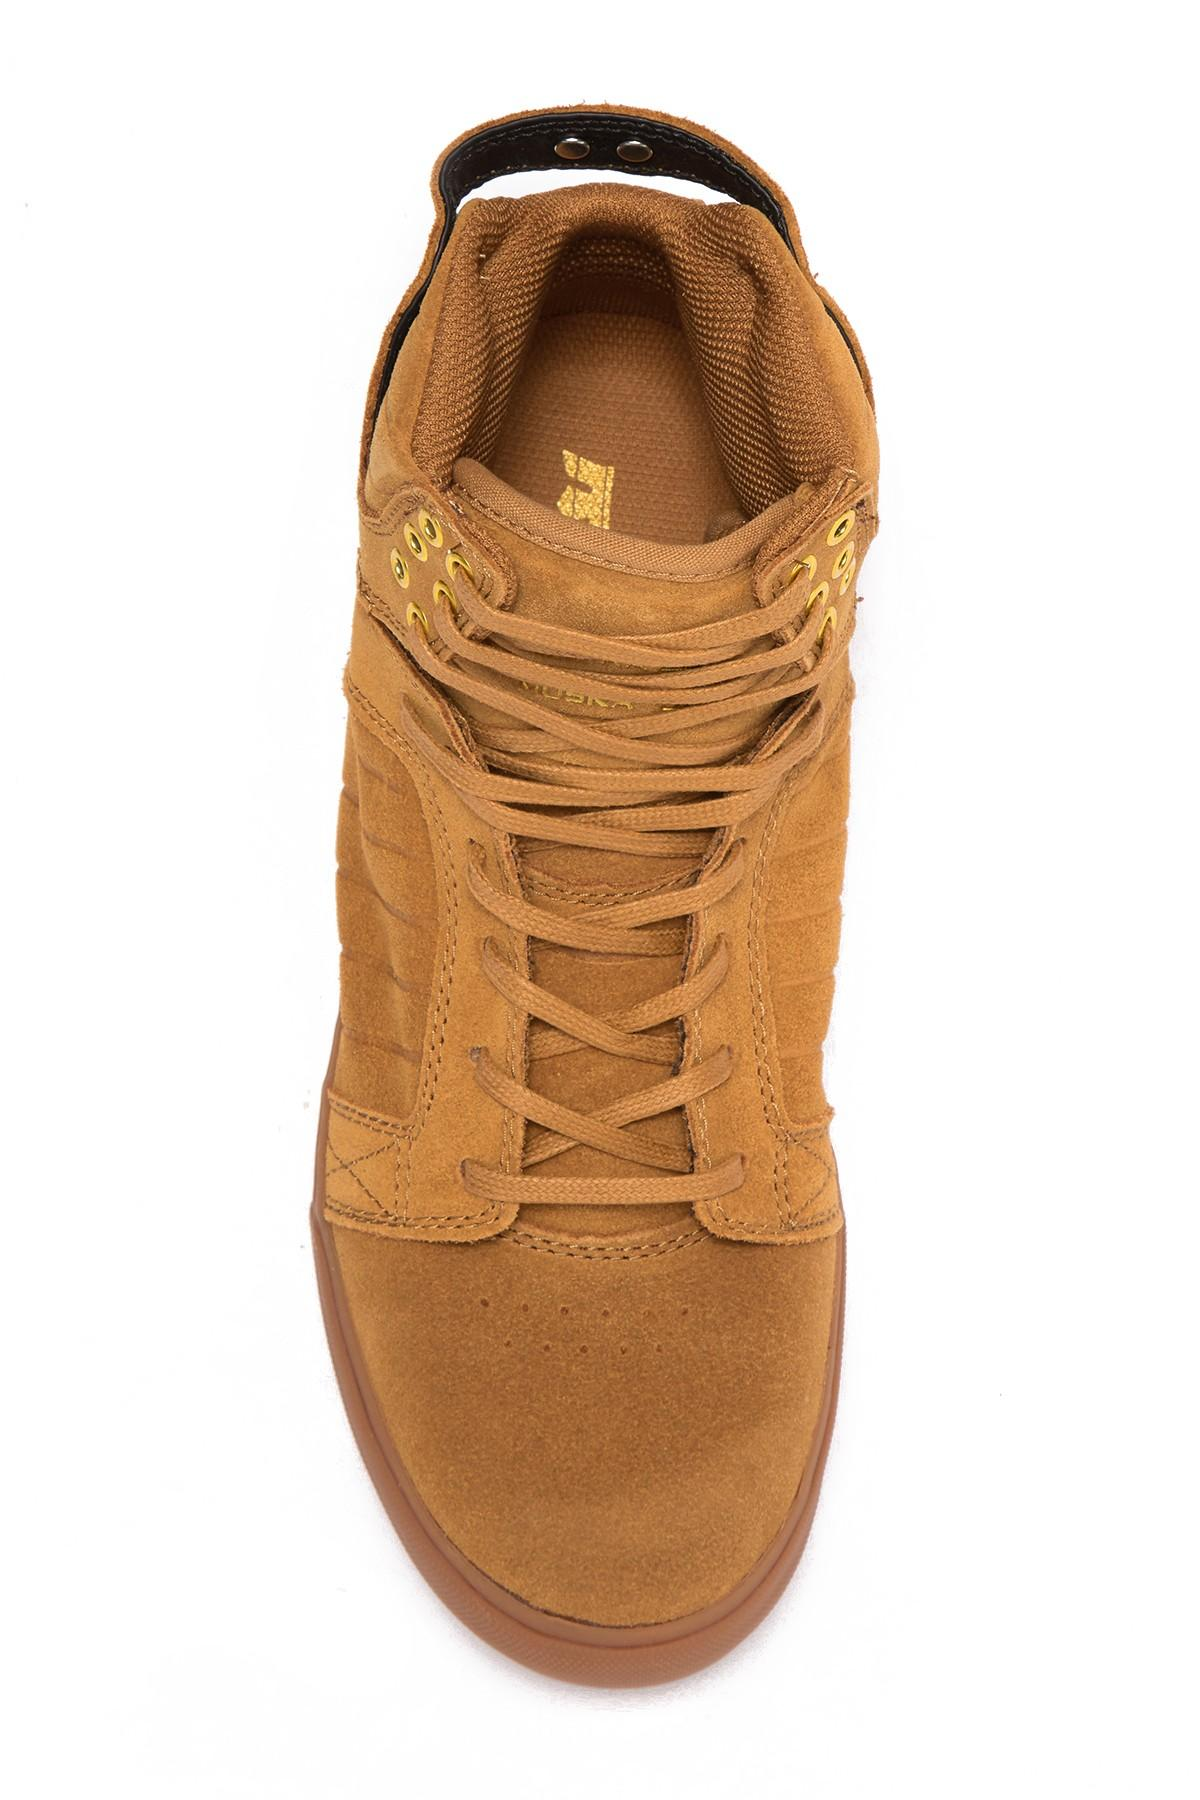 070eed7e080 Supra Skytop High-top Sneaker in Brown for Men - Save 58% - Lyst